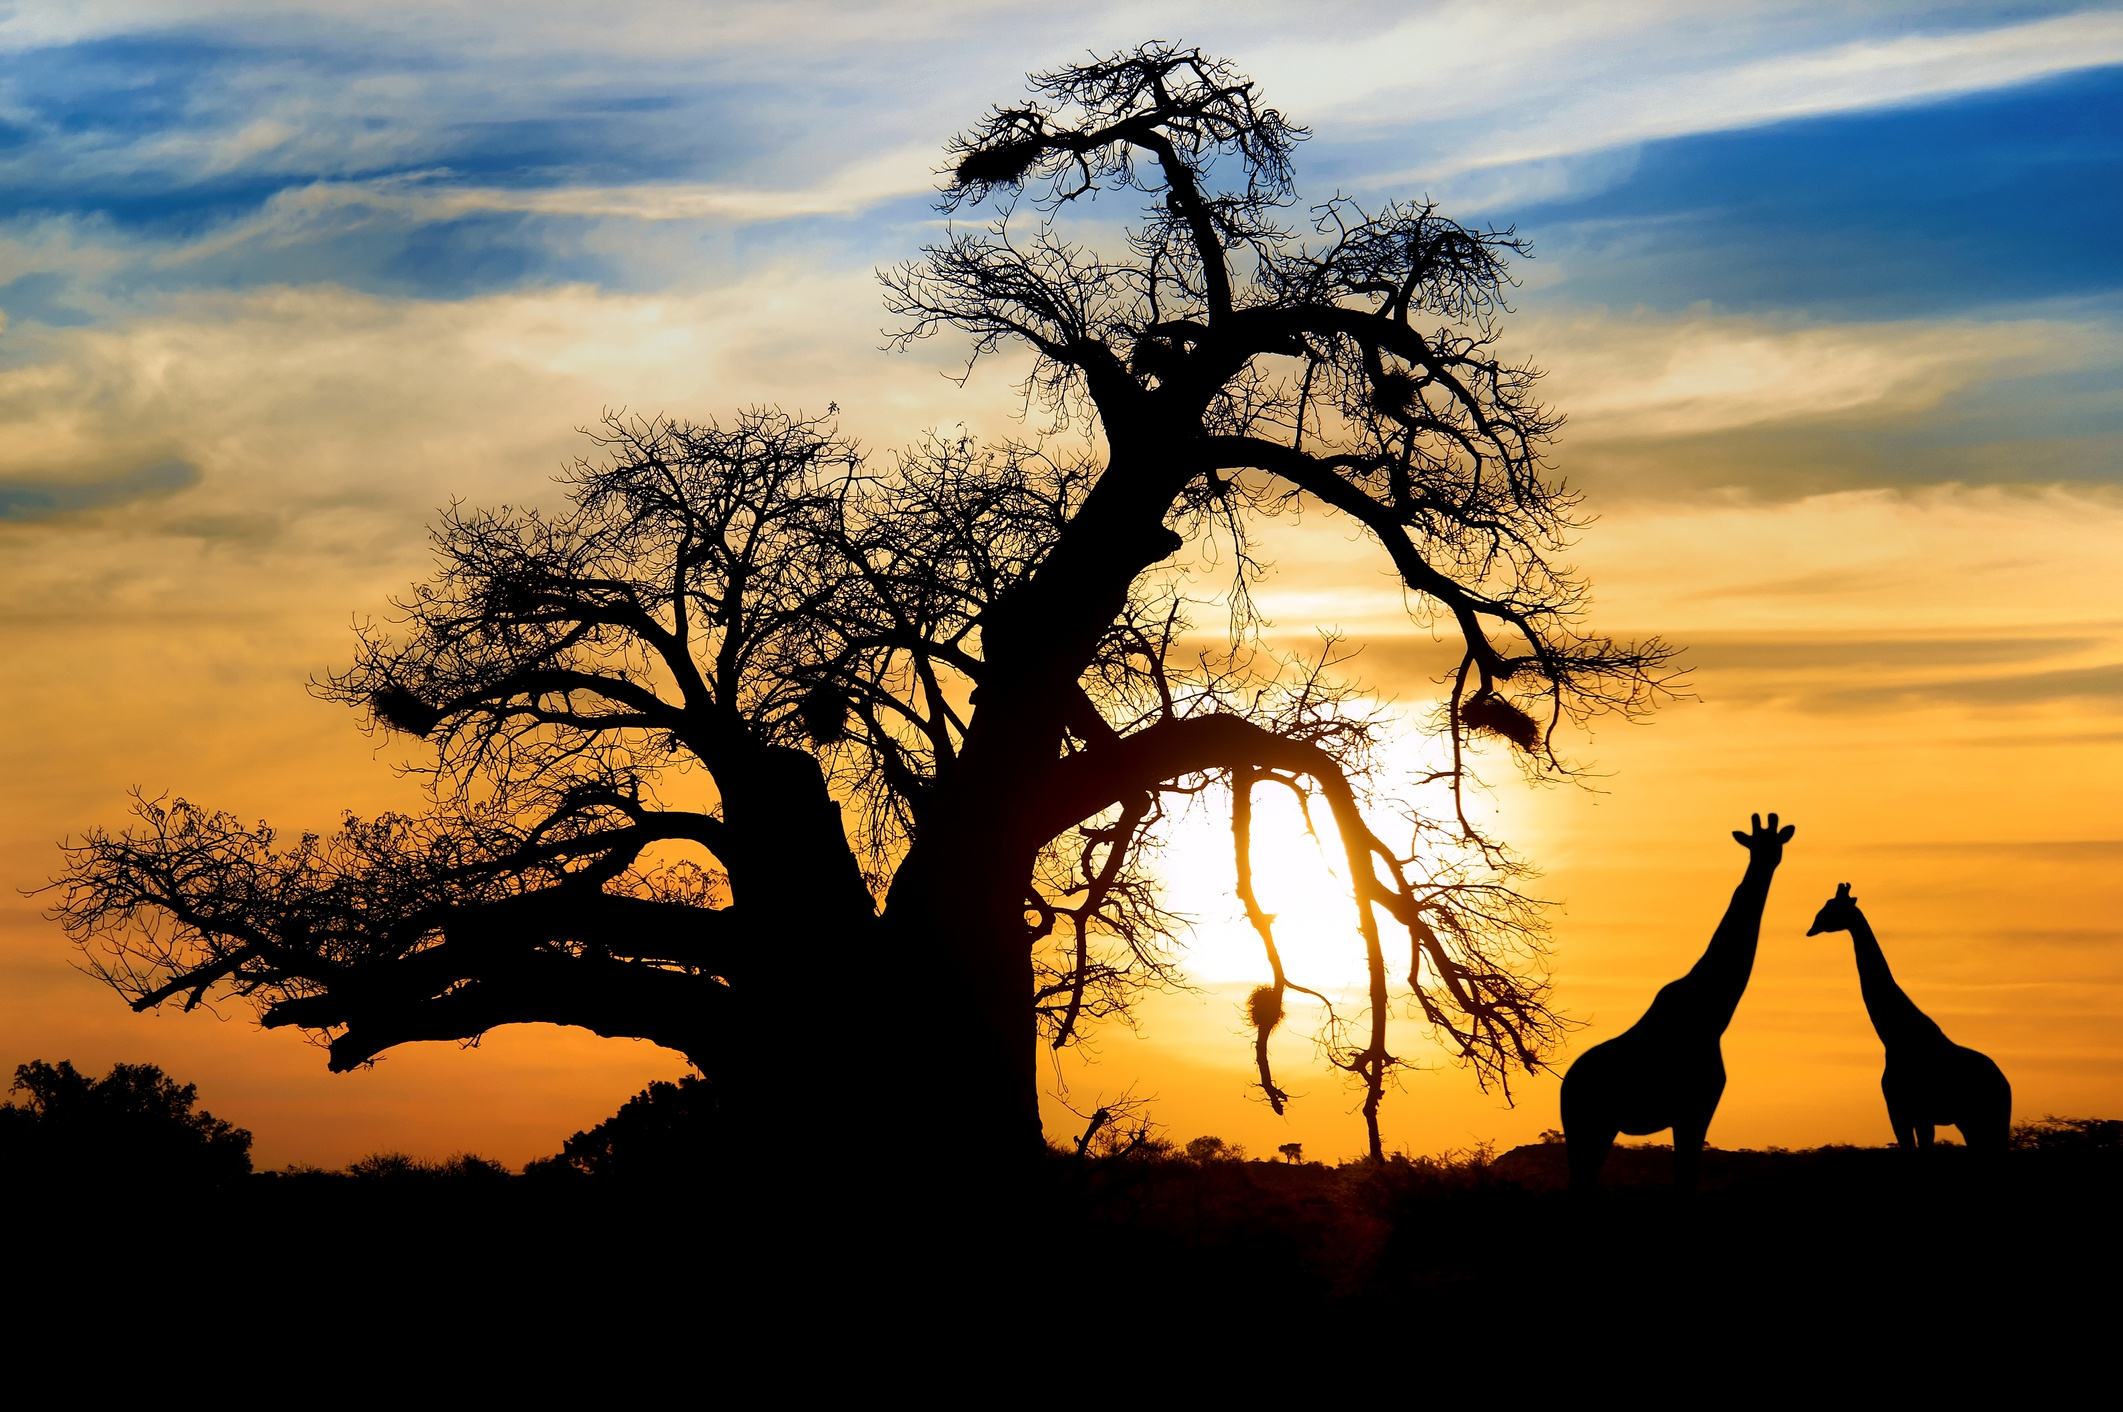 Giraffes in the Botswana sunset